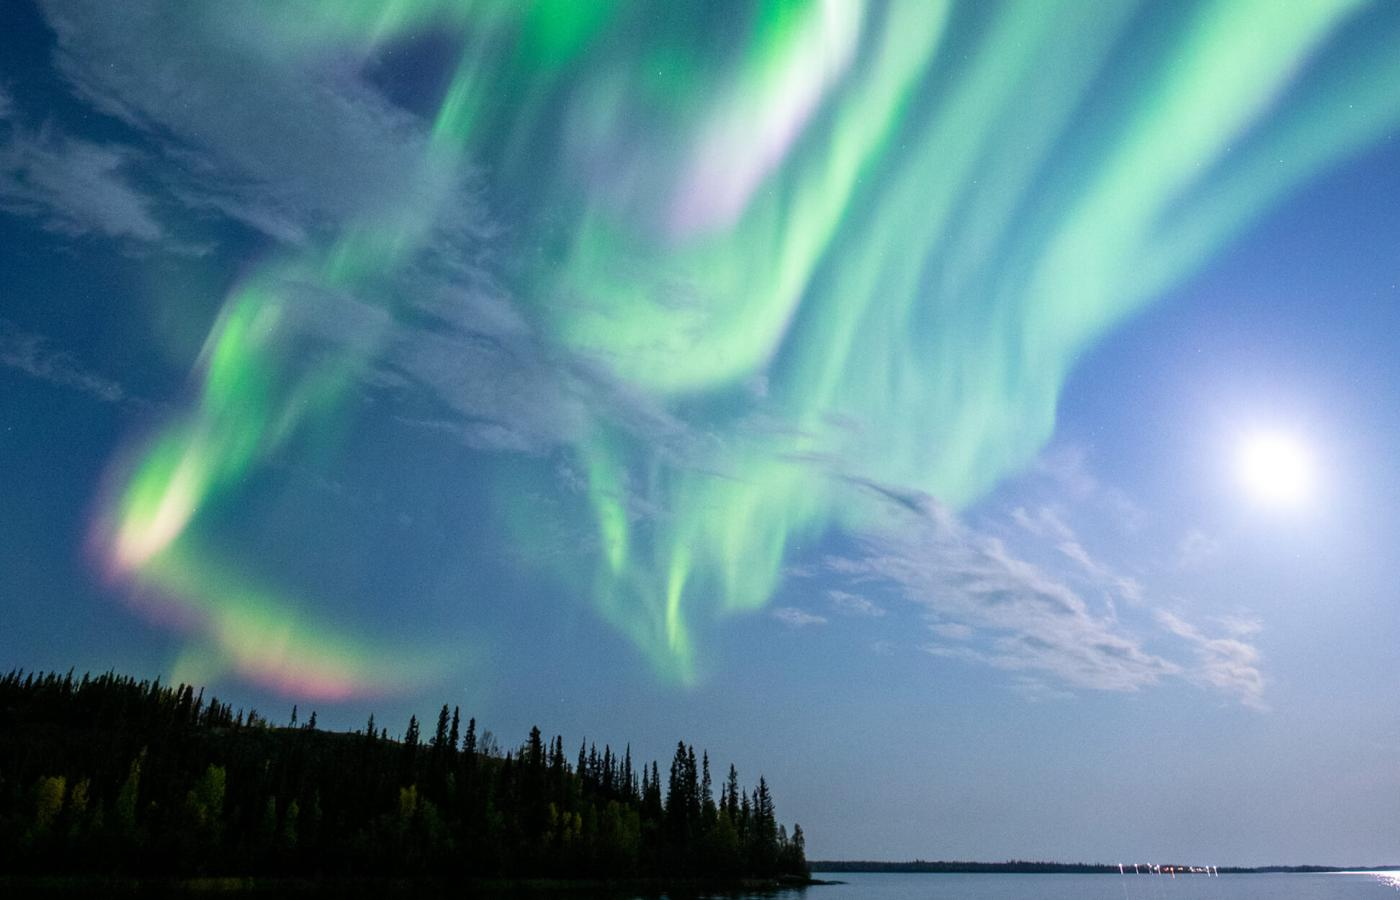 The Northern Lights dance in the night sky over a lake in the Northwest Territories.  Photo Credit Bill Braden